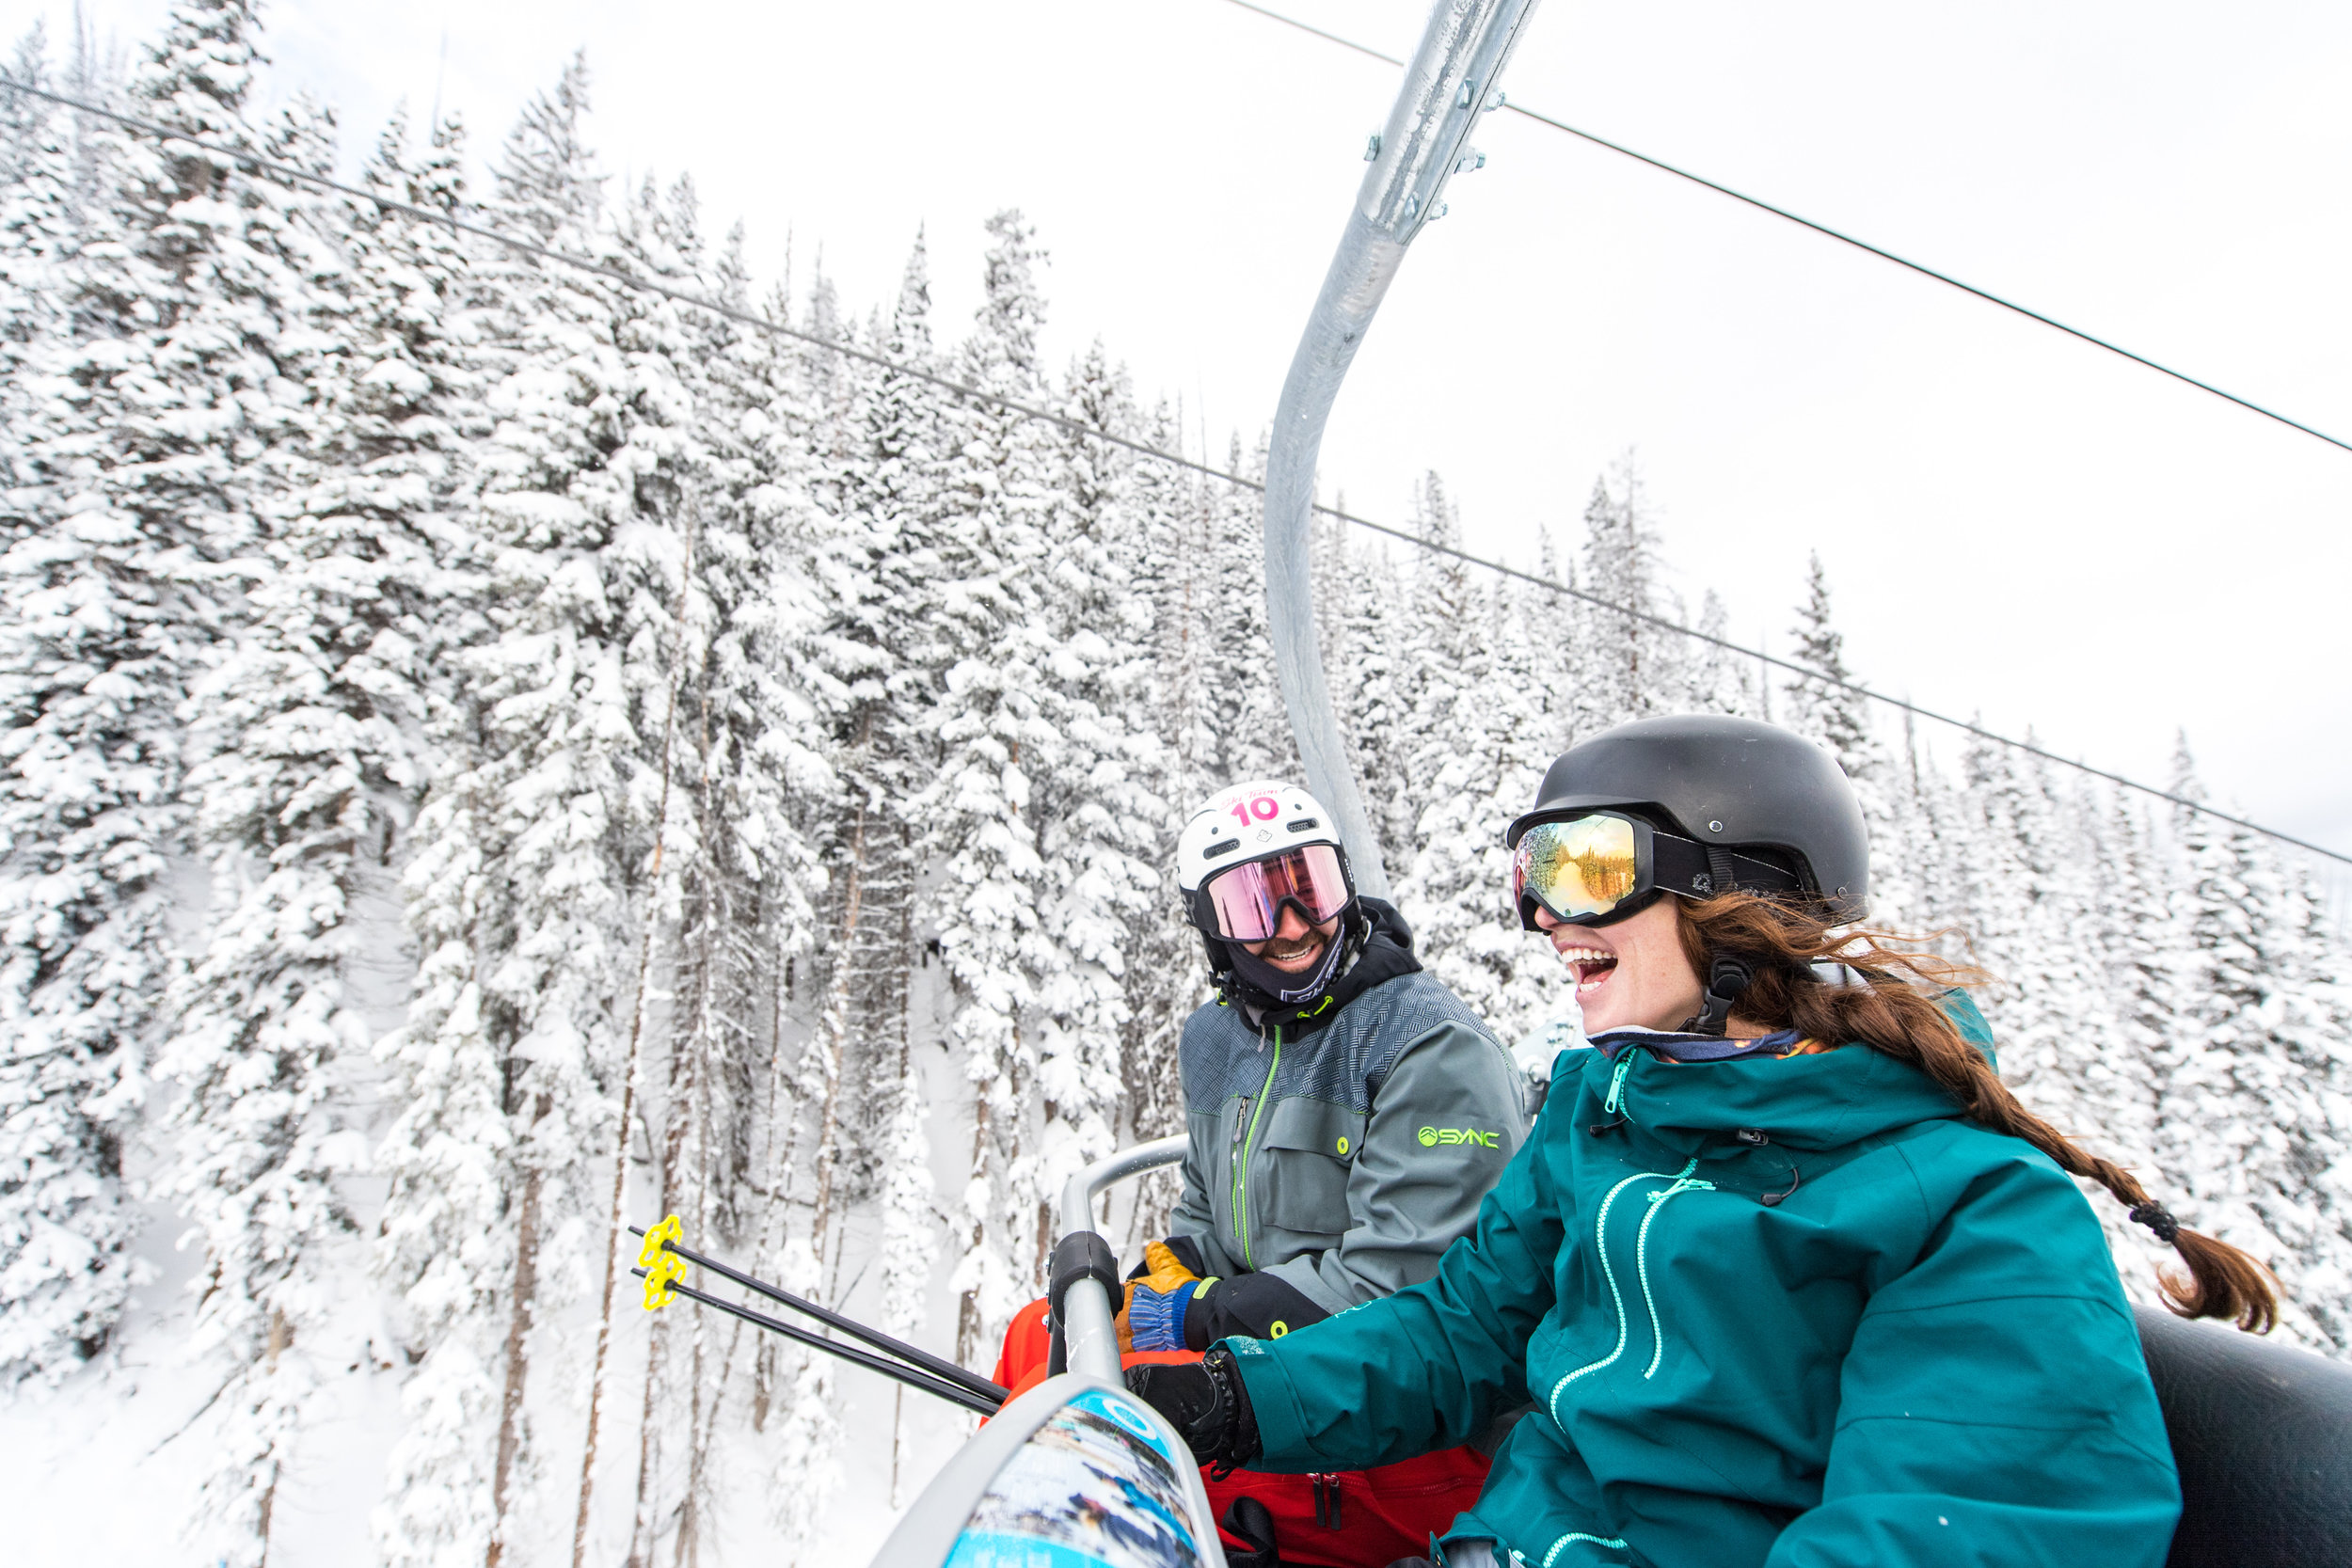 20171226_VailSnow_TomasCohen238.jpg